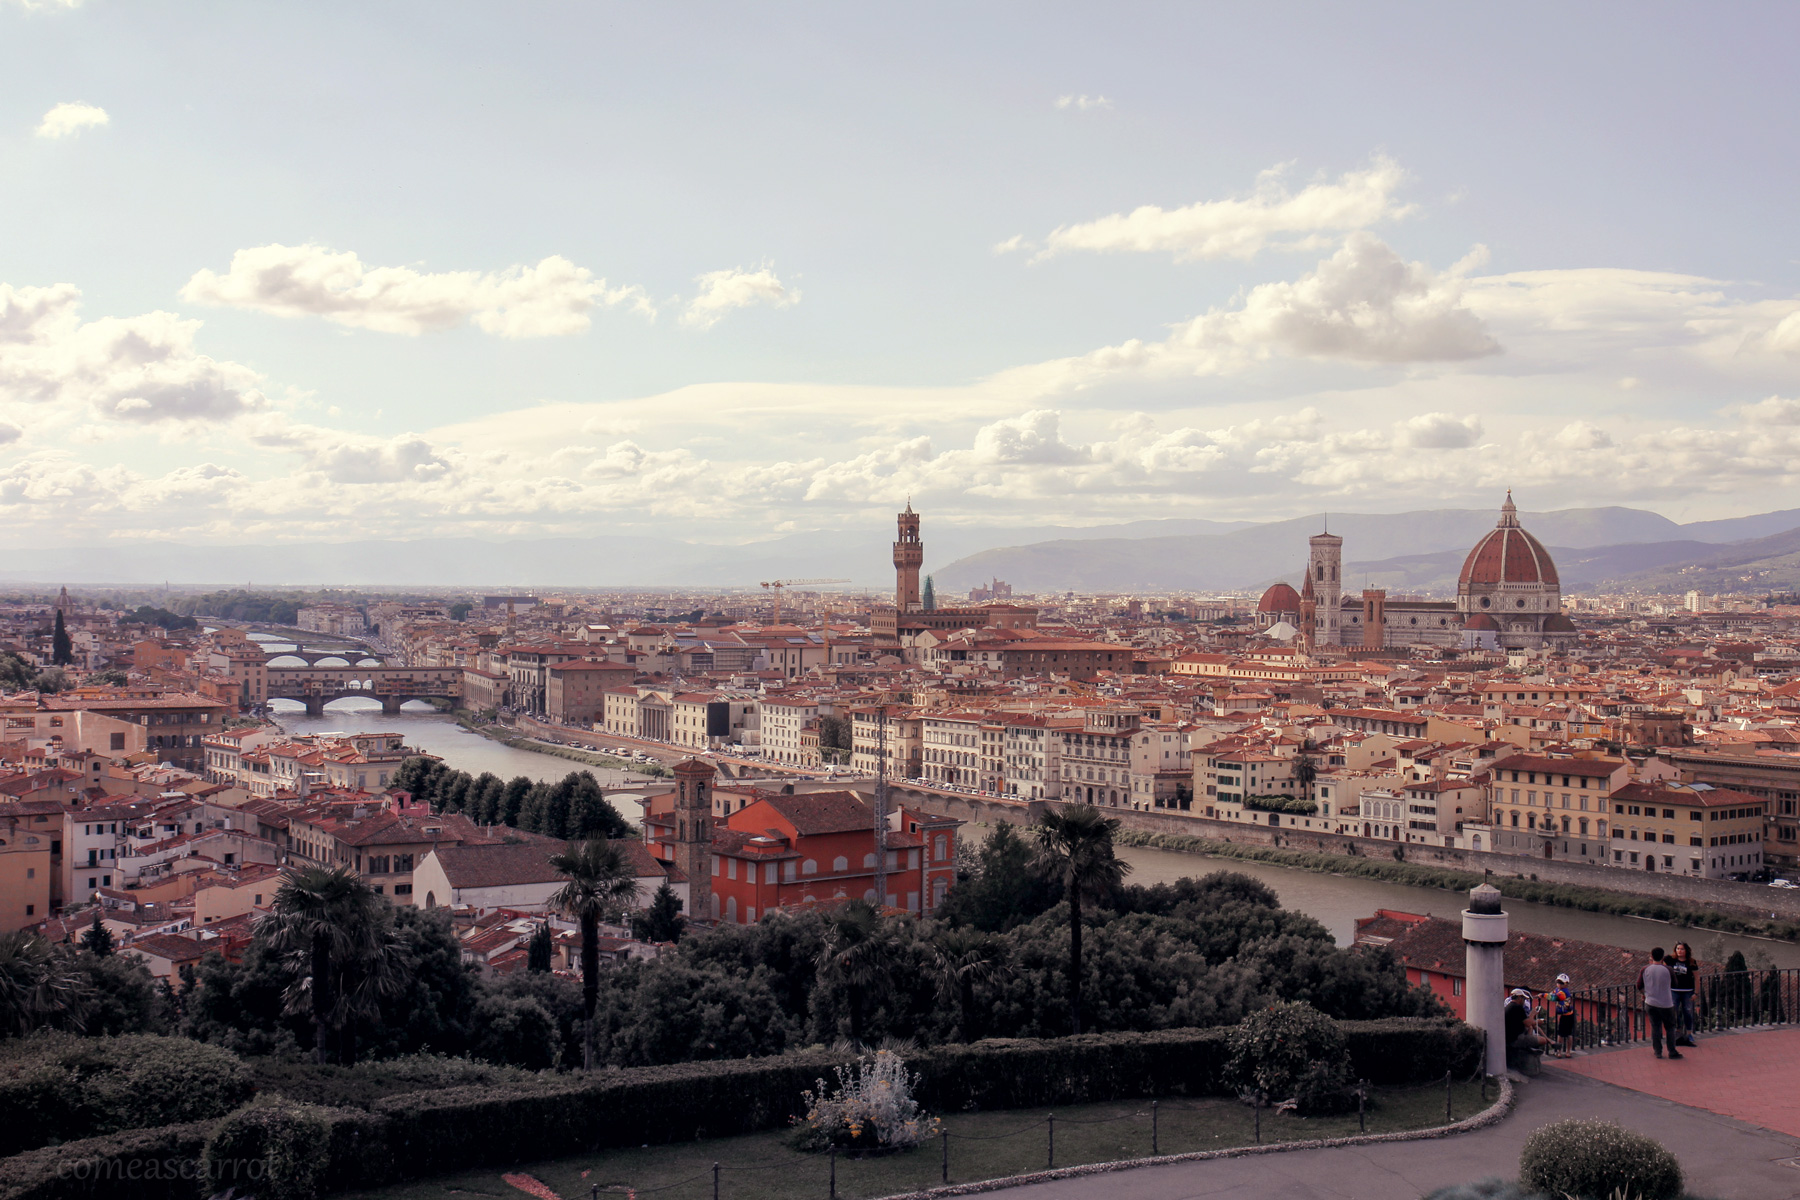 travel, florence, firenze, guide, tipps, florenz, italy, italien, city, fashionblog, fashion blog, blogger, fashionblogger, mode blog, deutschland, comeascarrot, come as carrot, things, to do, view, Piazza Michelangelo